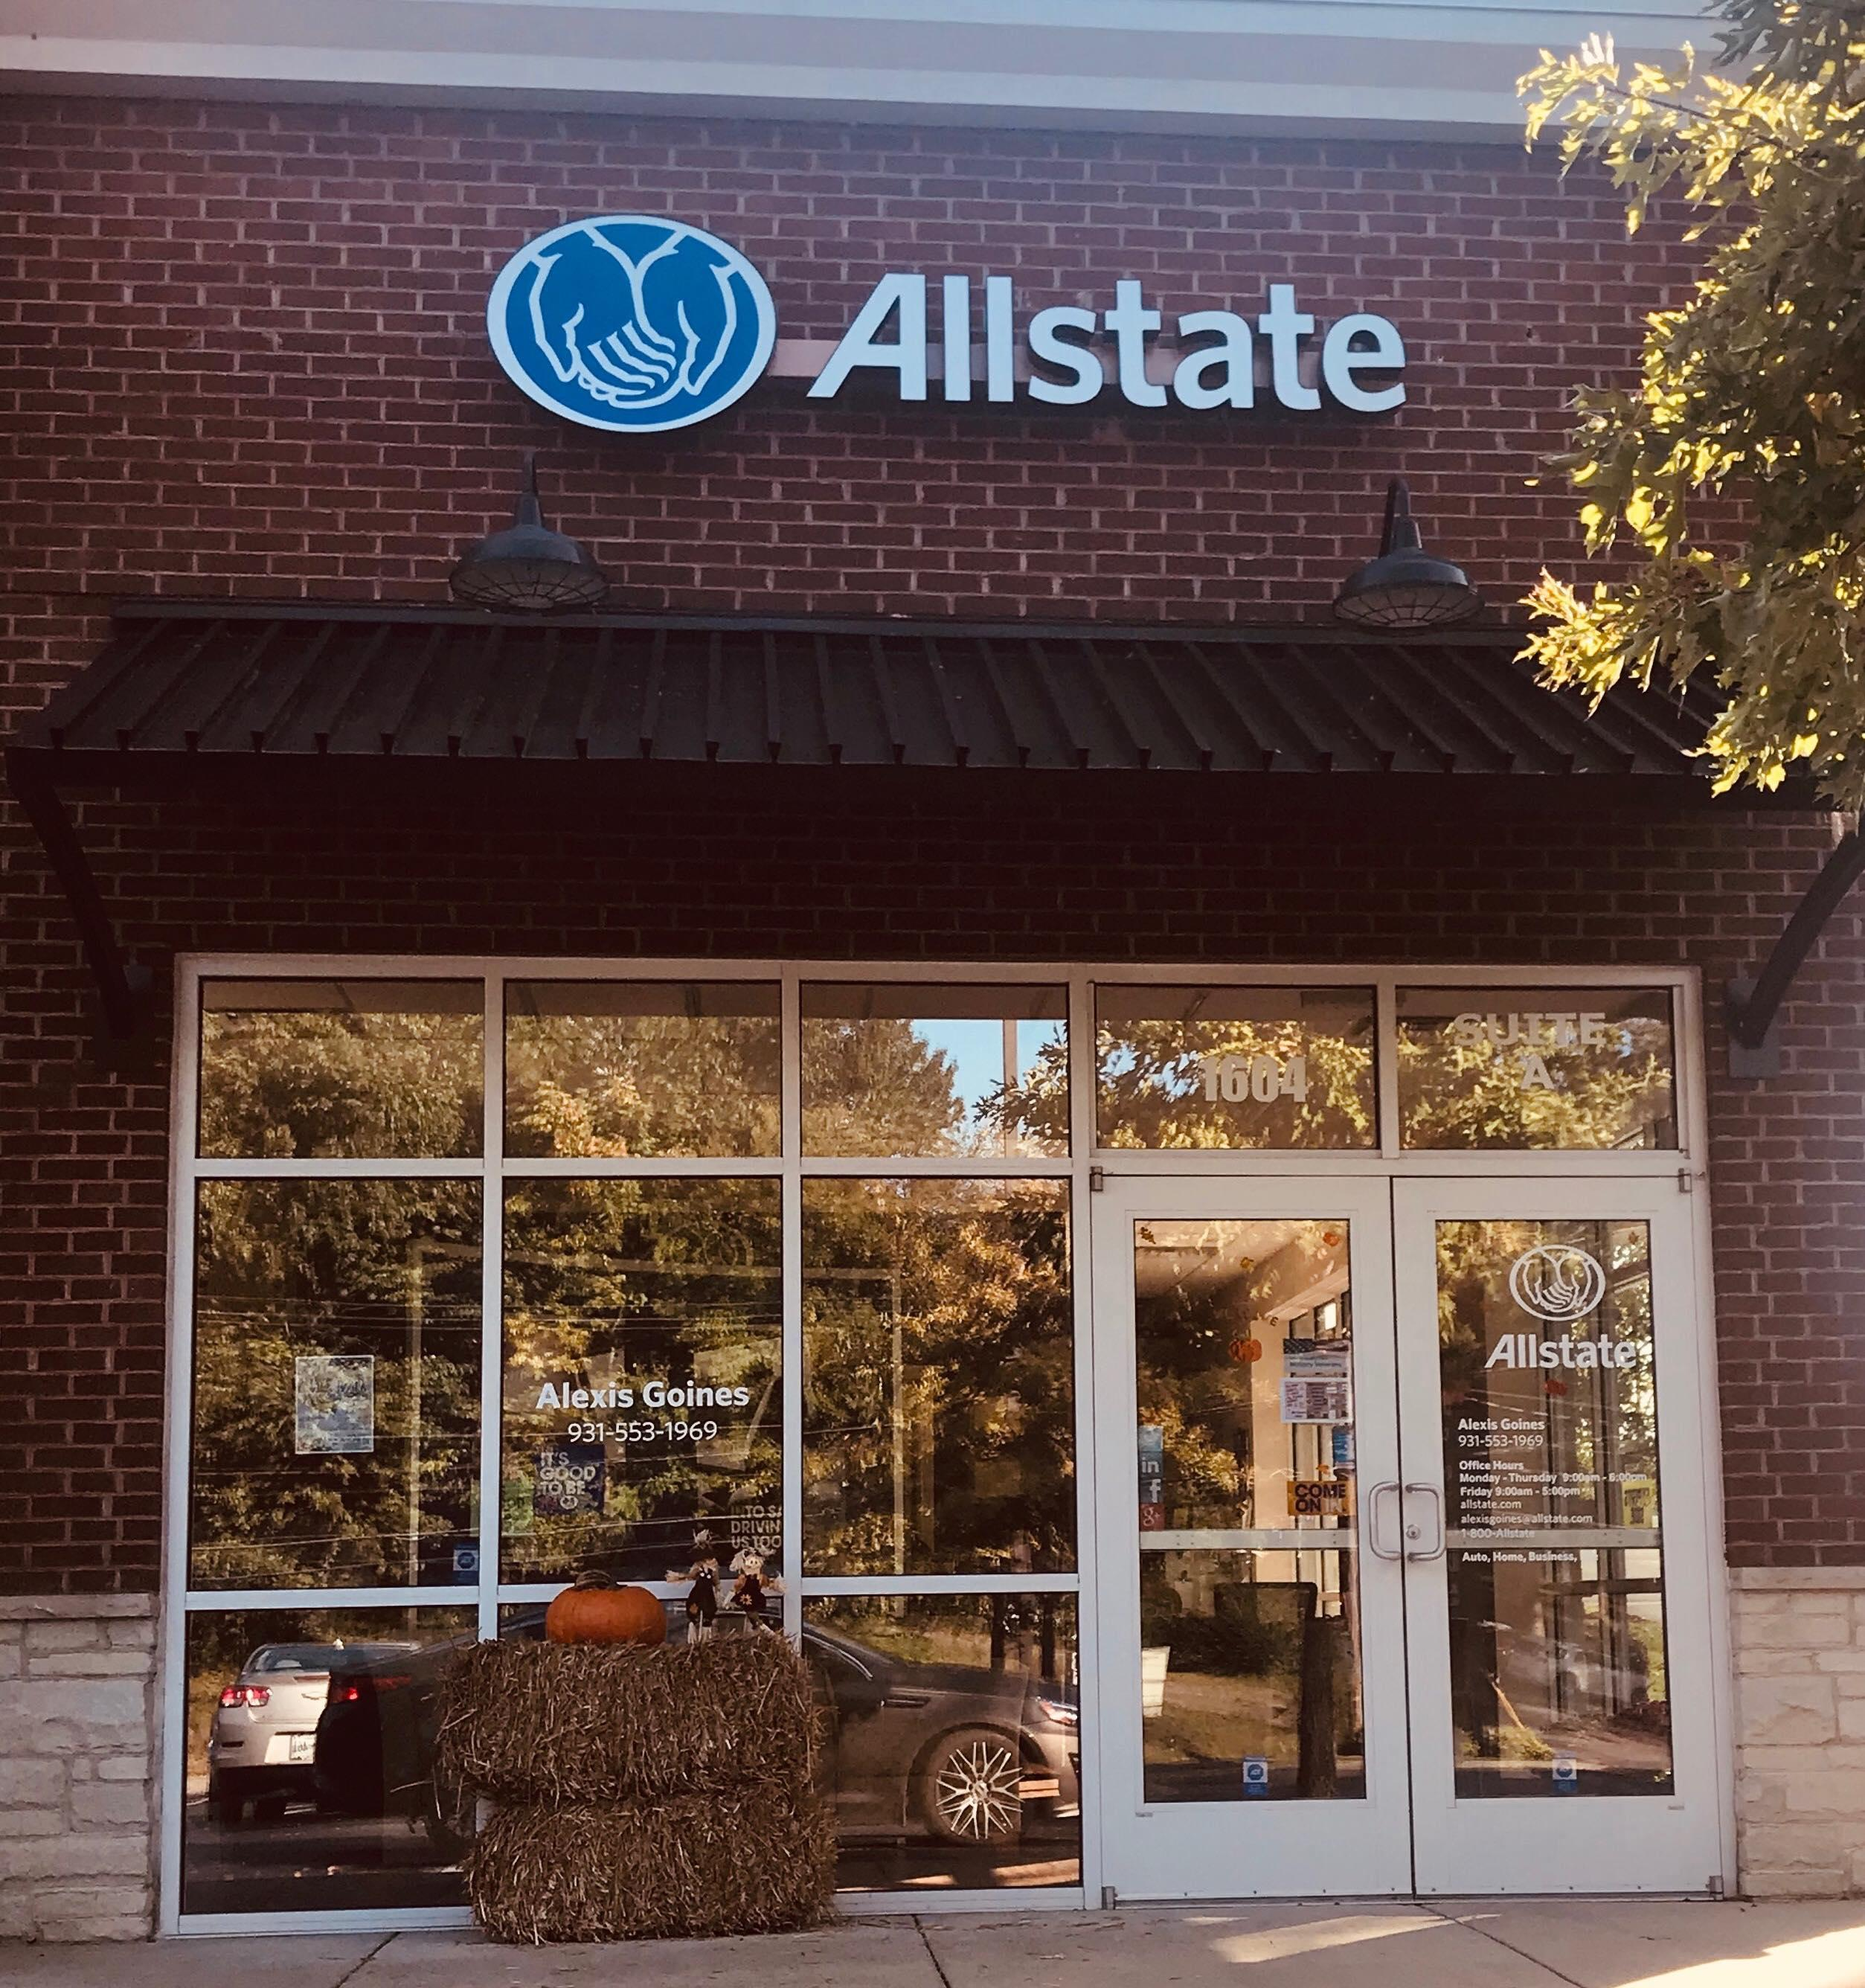 Alexis Goines: Allstate Insurance image 33